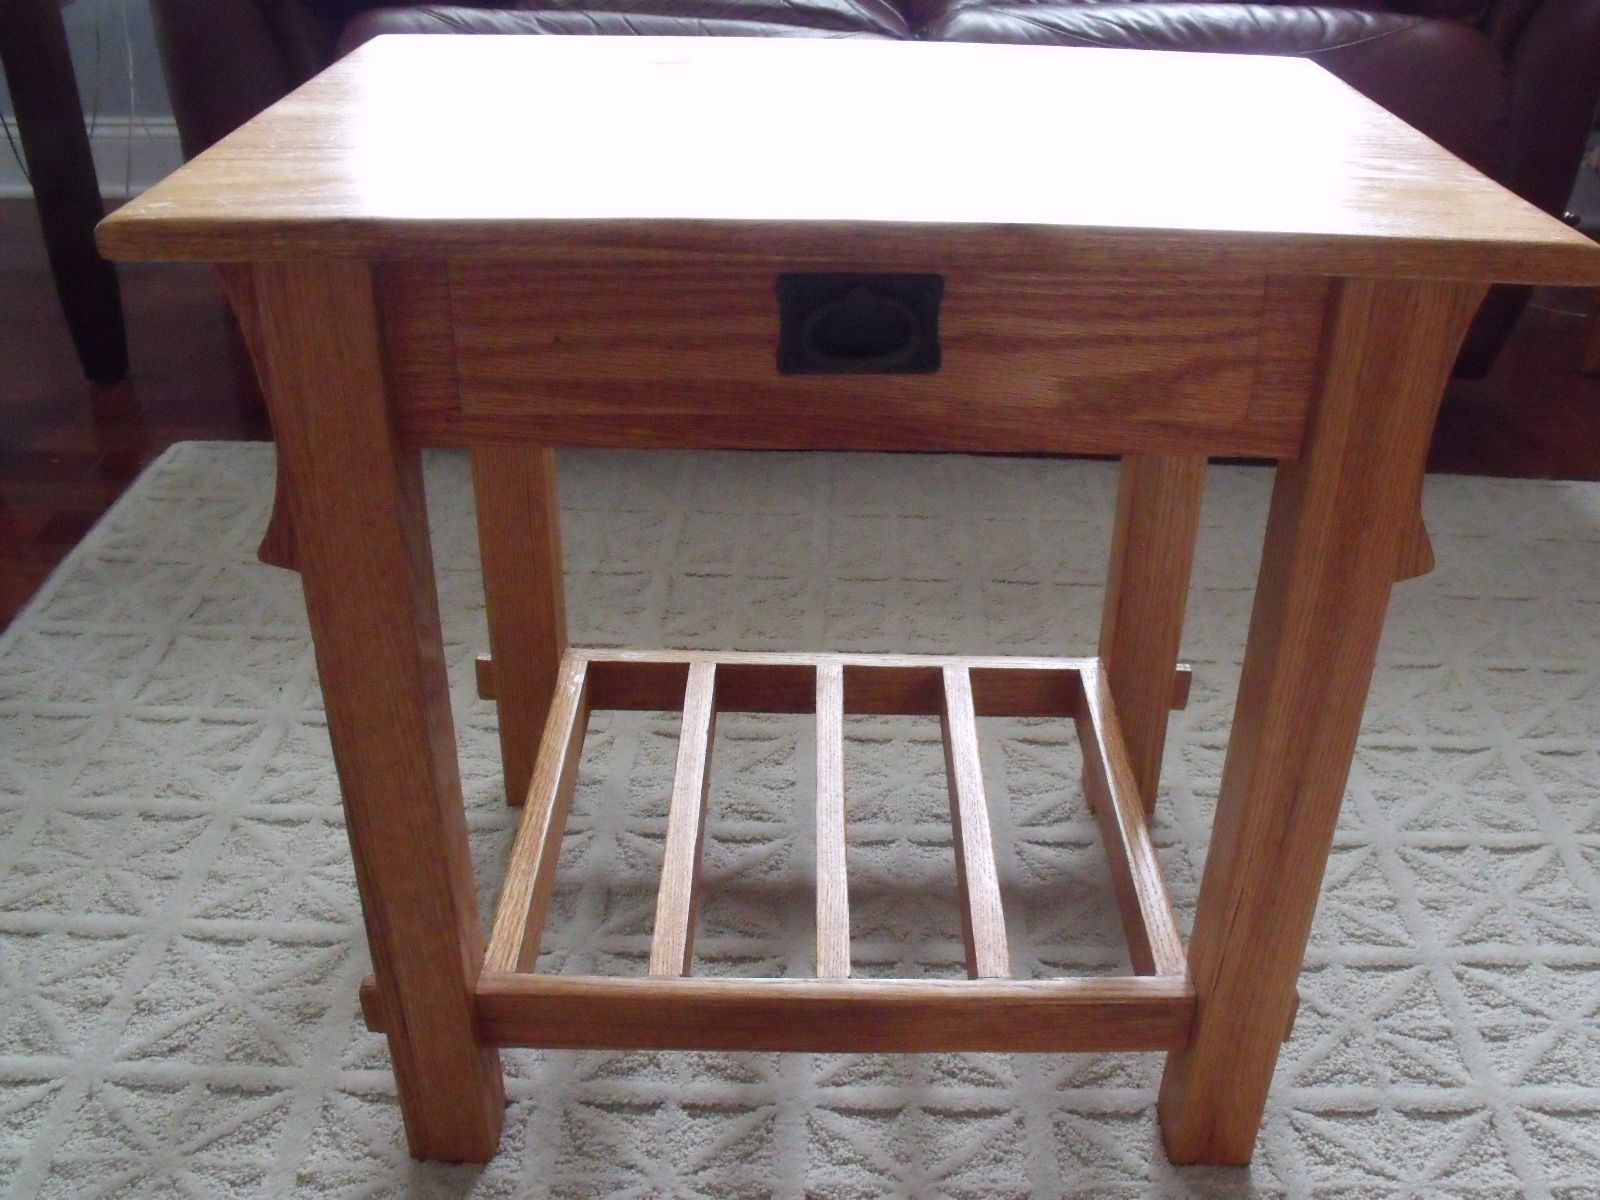 End Table Woodworking Projects When You Really Are Looking For Terrific Tips About Working With Wood